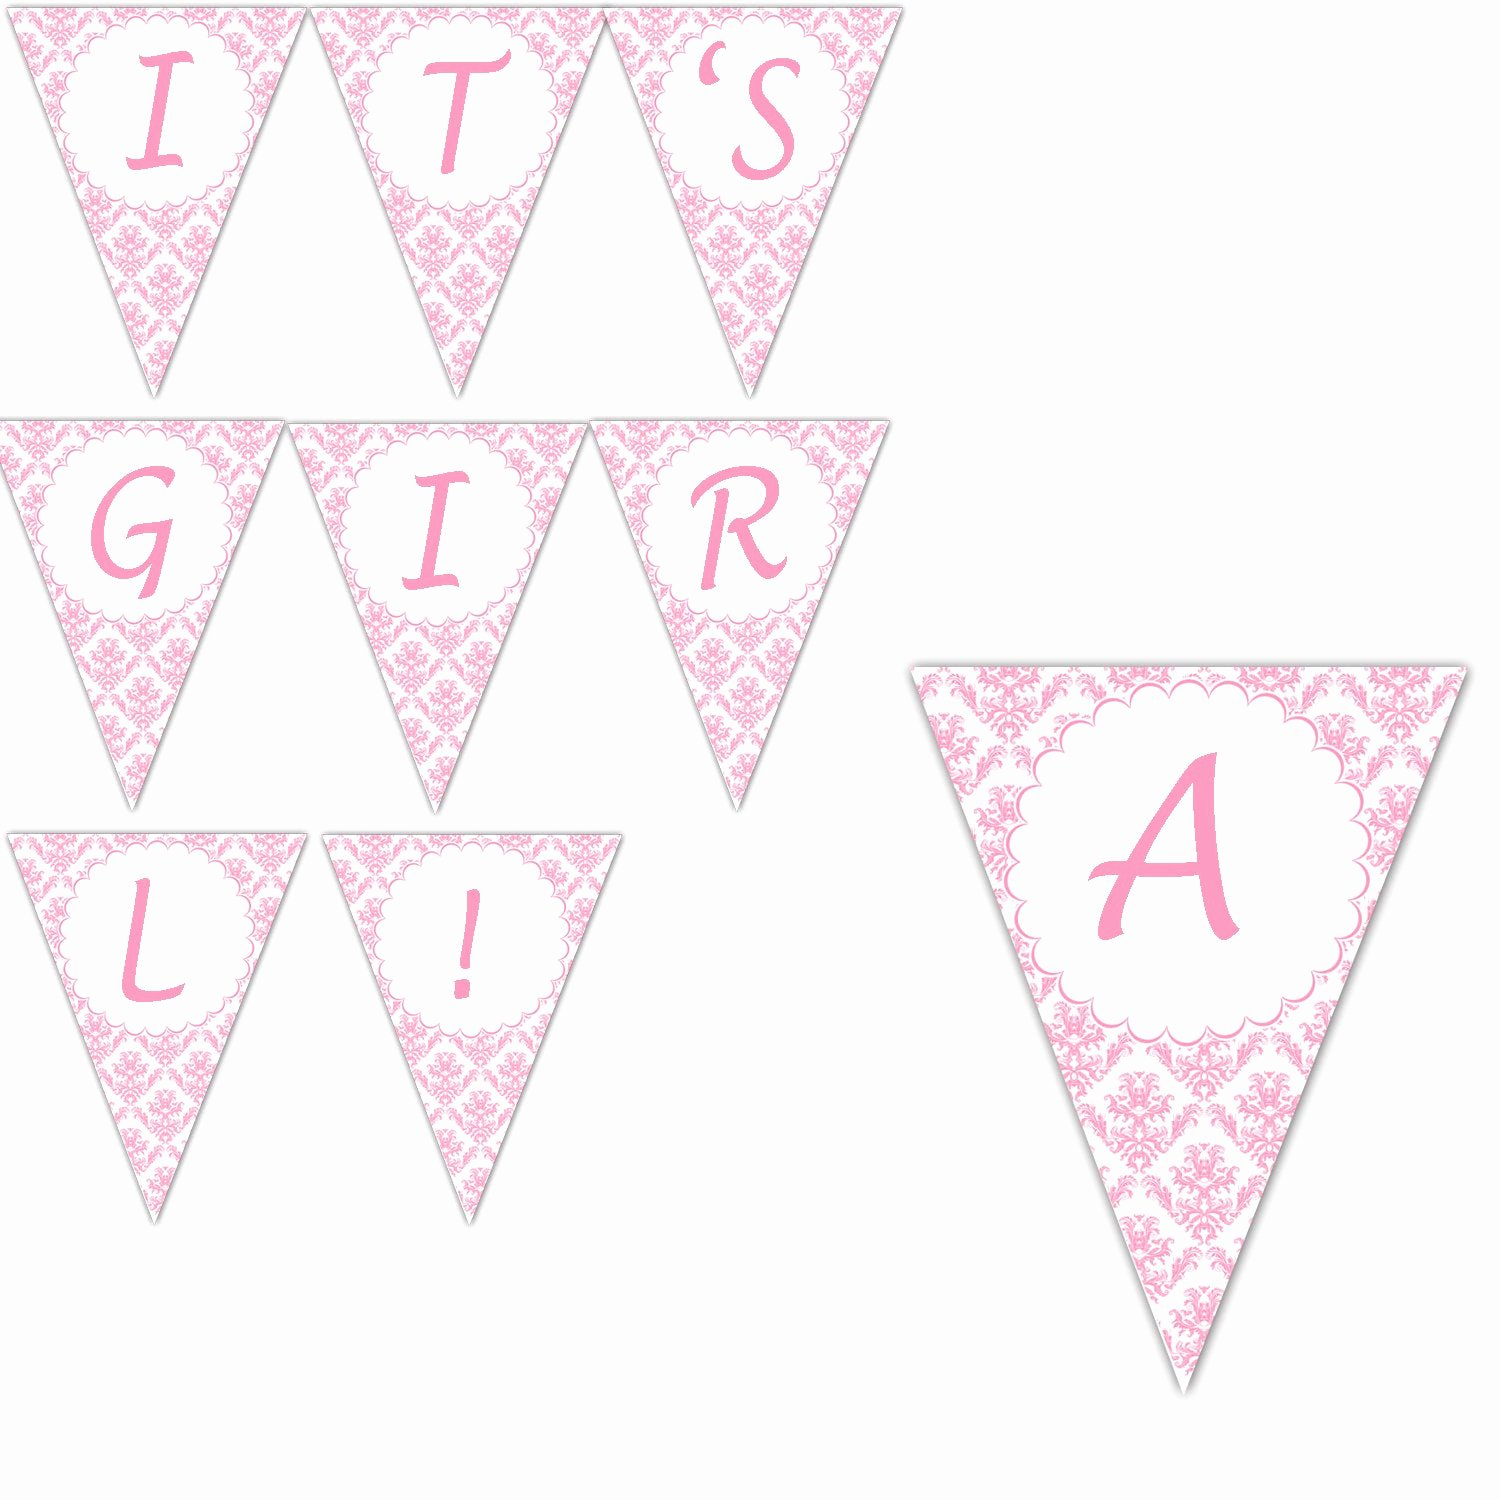 Baby Shower Banner Printable Elegant Baby Shower Banner Pink Dainty Damask Its A Girl Printable